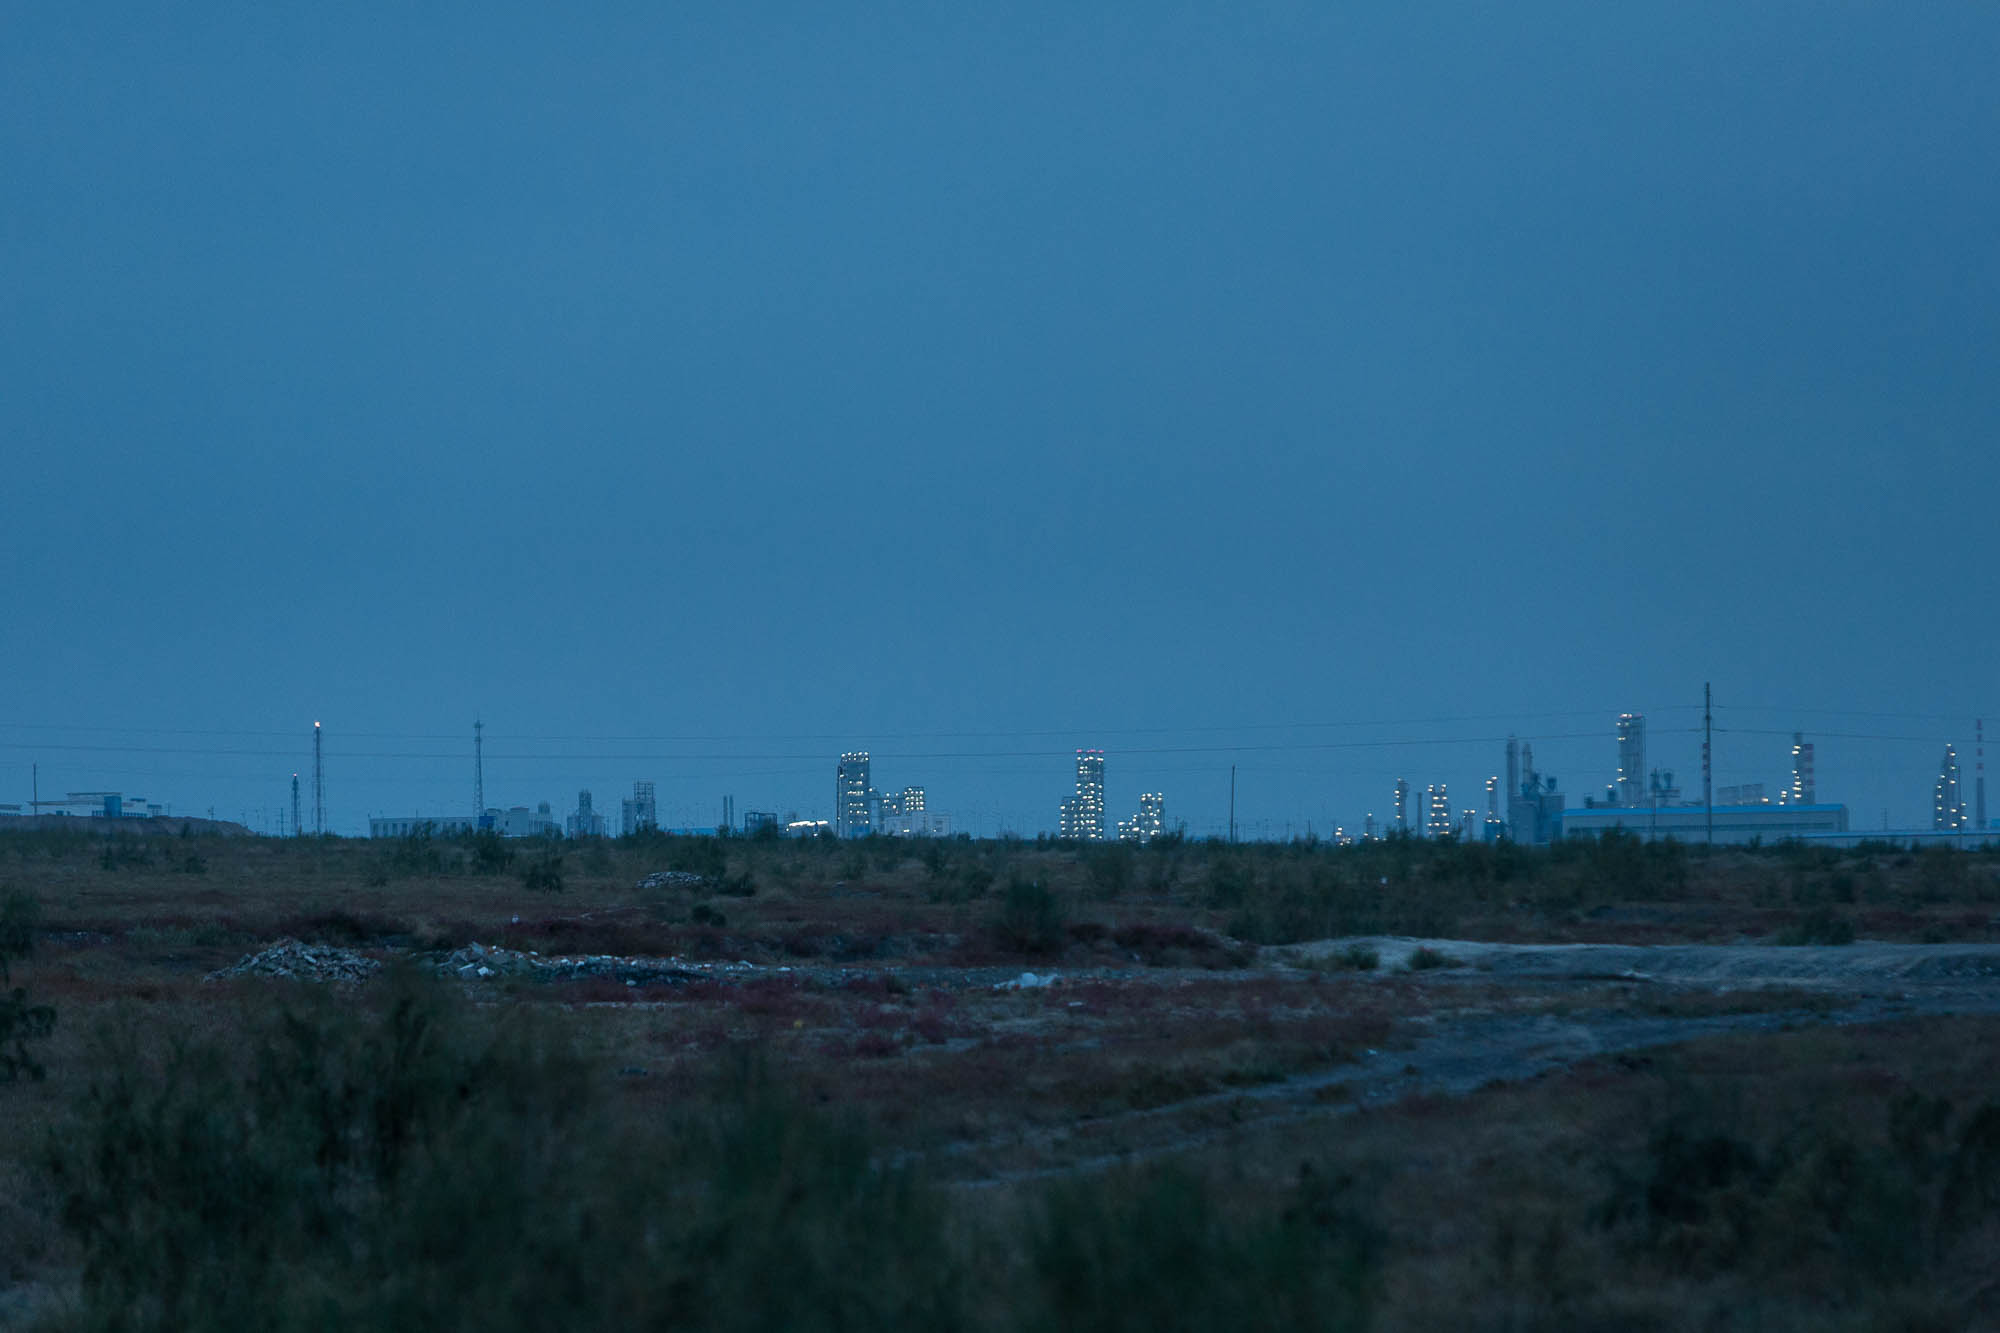 oil refineries in the distance